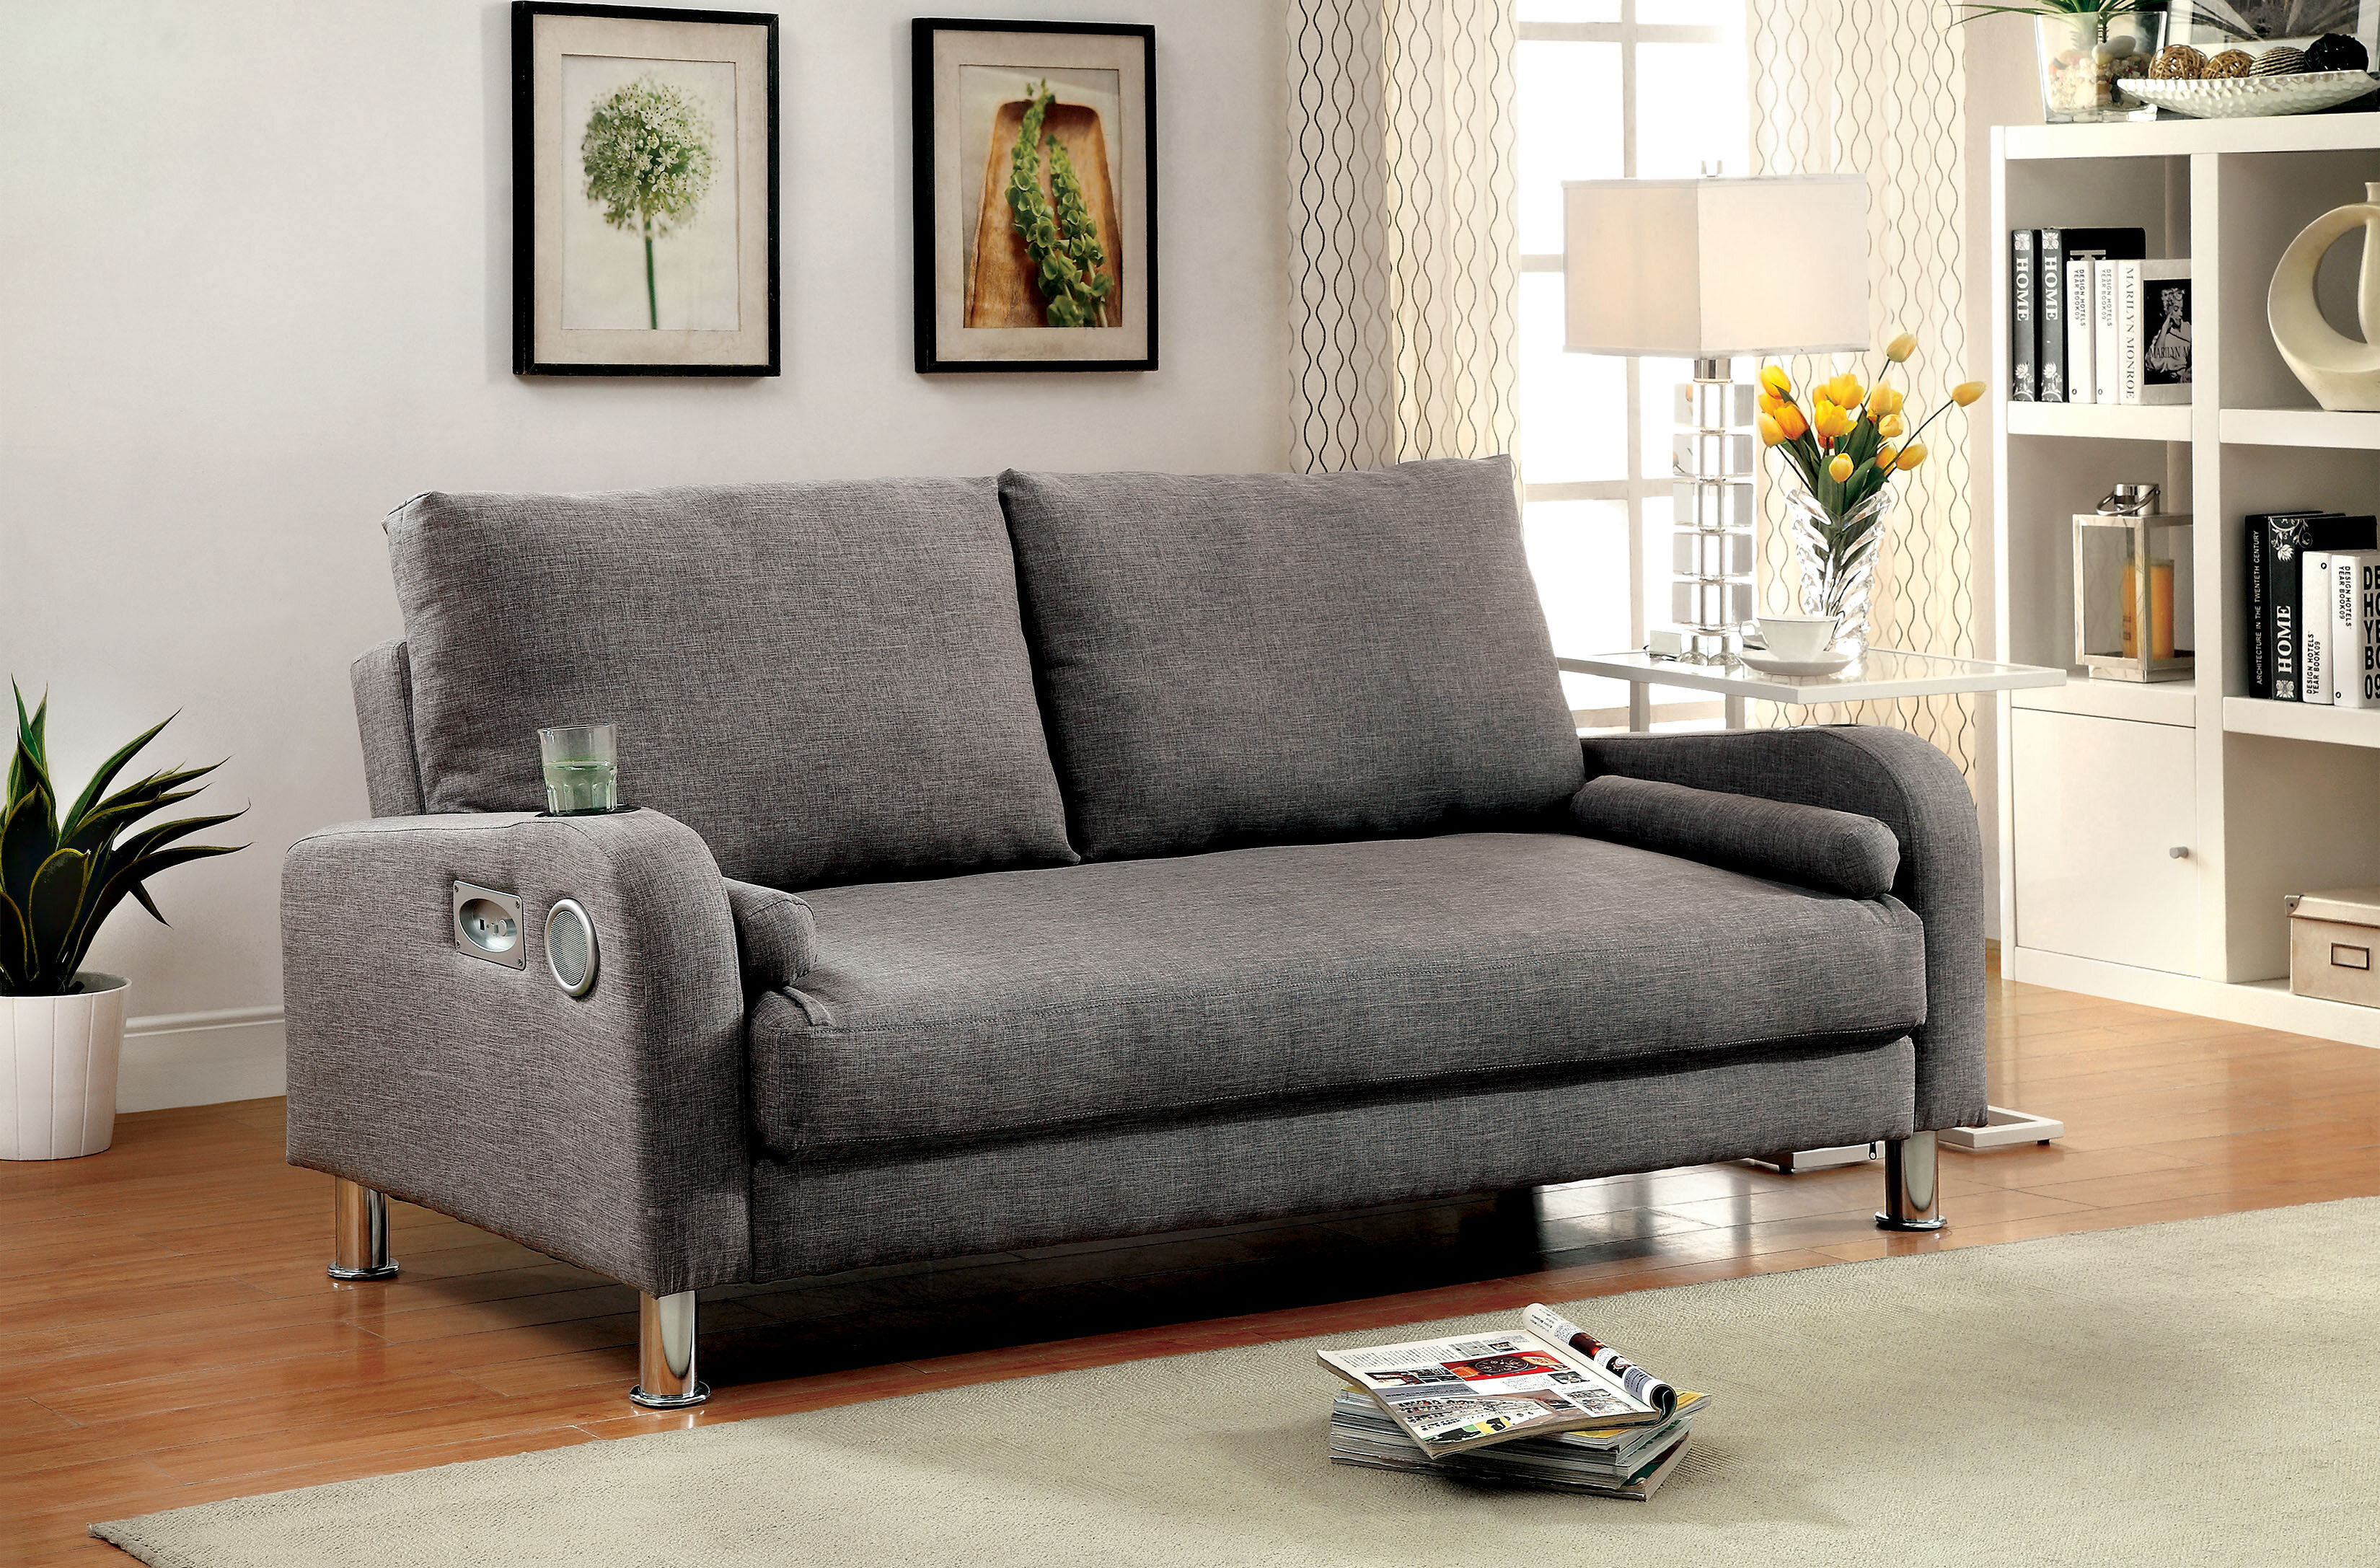 fit protector arm chaise for covers long full size large sure futons couch of cloth sofa extra chair couches futon slipcover club sofas black